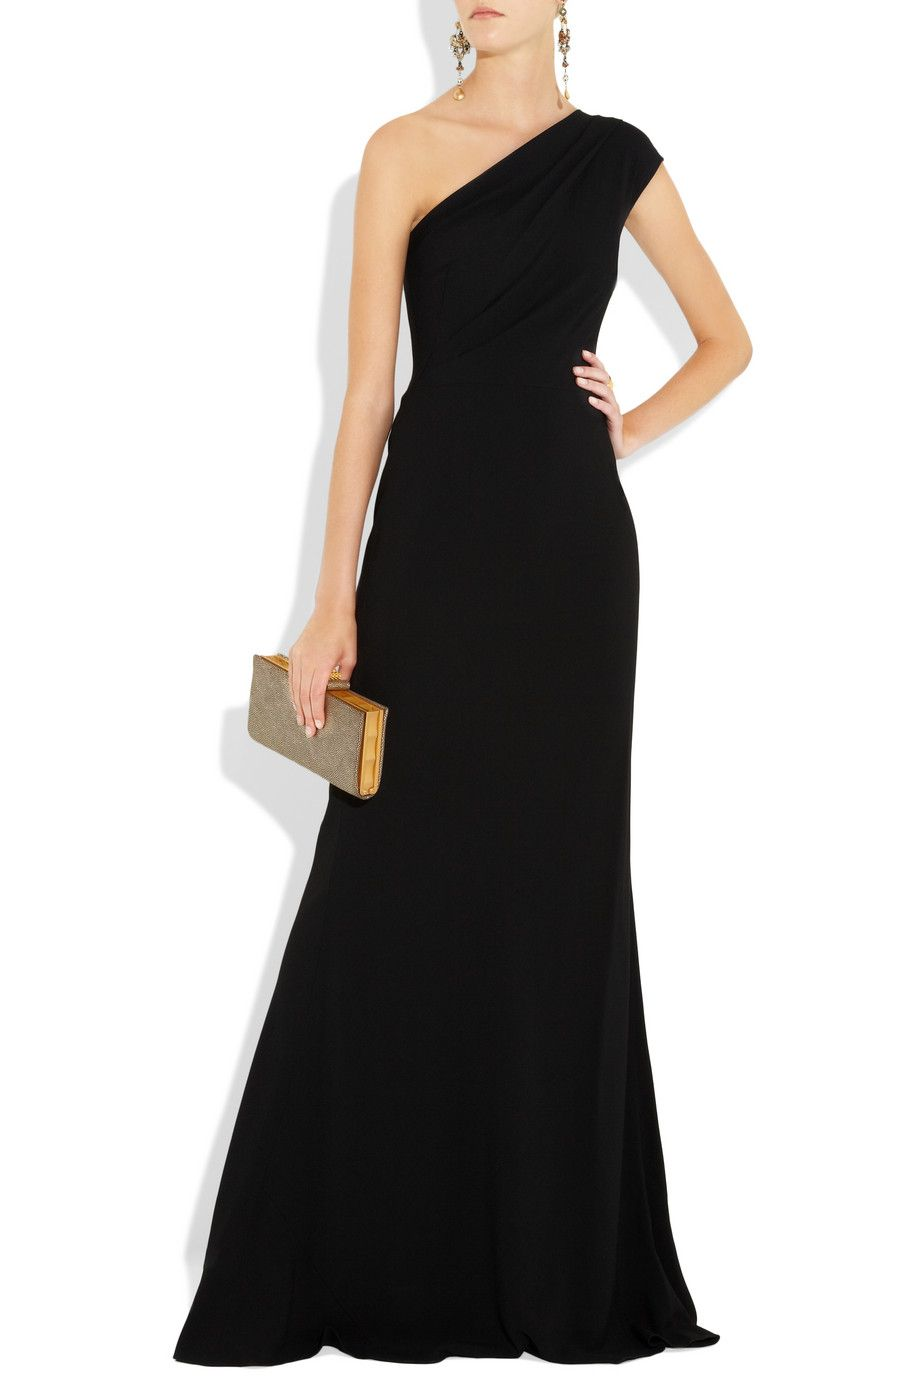 Ralph Lauren -- Gorgeous long black dress!  d1b63a108